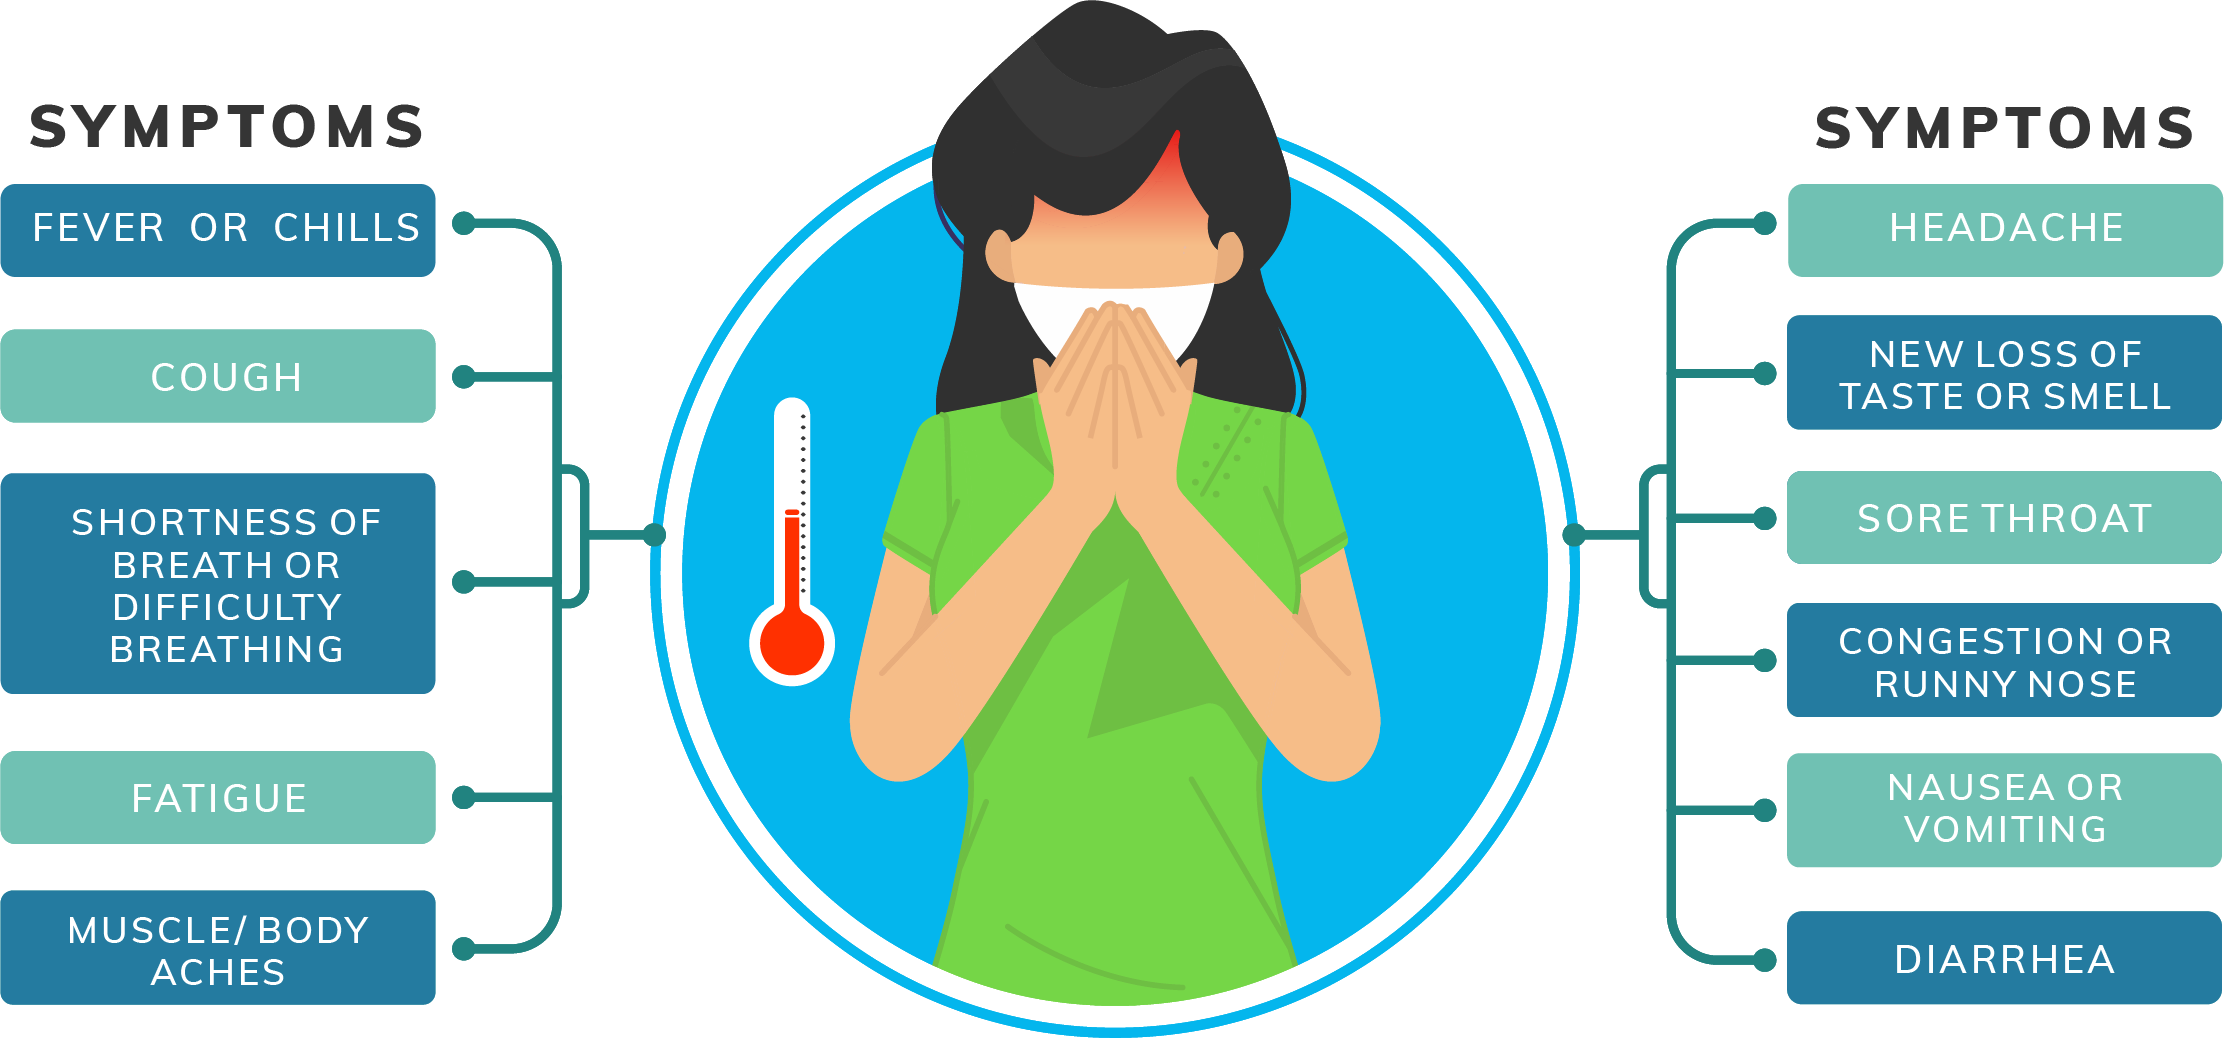 Fever or chills, cough, shortness of breath or difficulty breathing, fatigue, muscle or body aches, headache, new loss of taste or smell, sore throat, congestion or runny nose, nausea or vomiting, diarrhea.